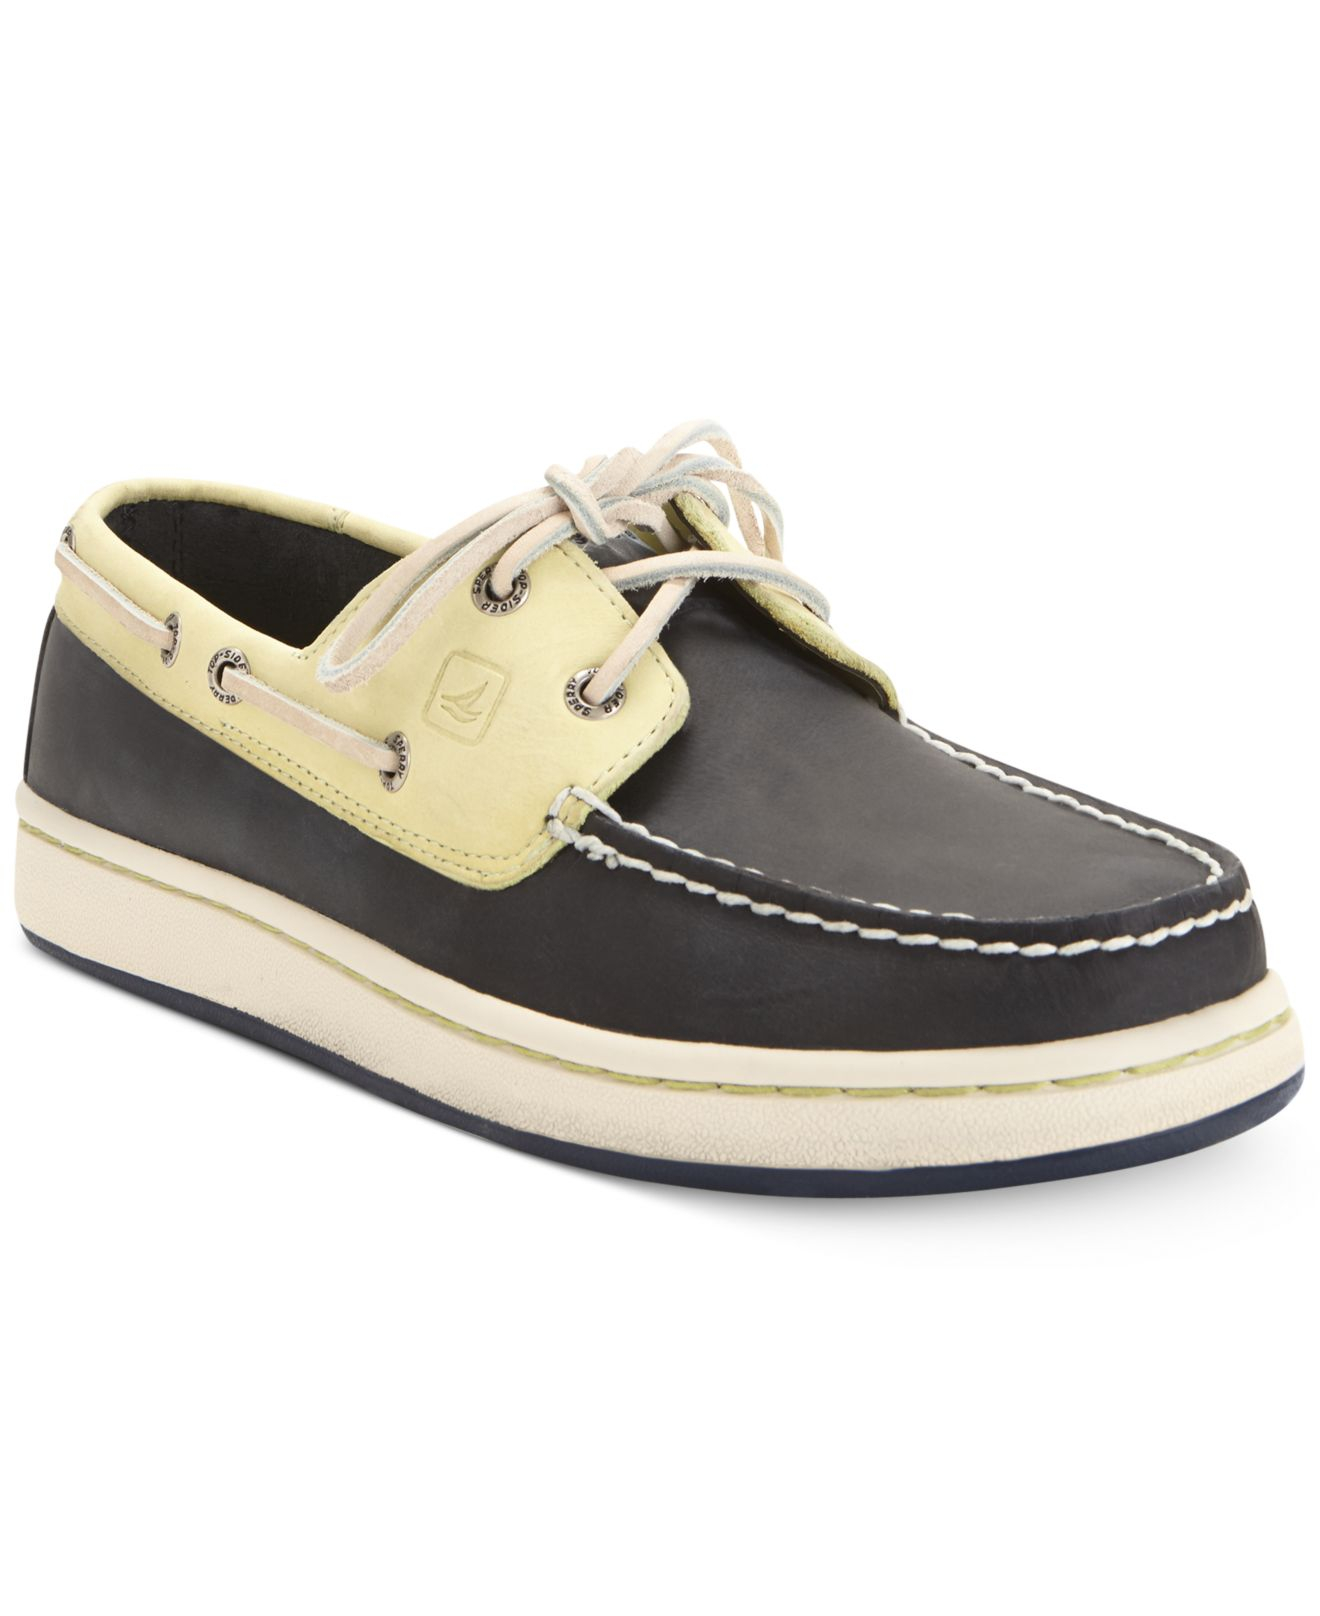 3834b672dd8 Lyst - Sperry Top-Sider Sperry Cup 2-Eye Boat Shoes in Blue for Men